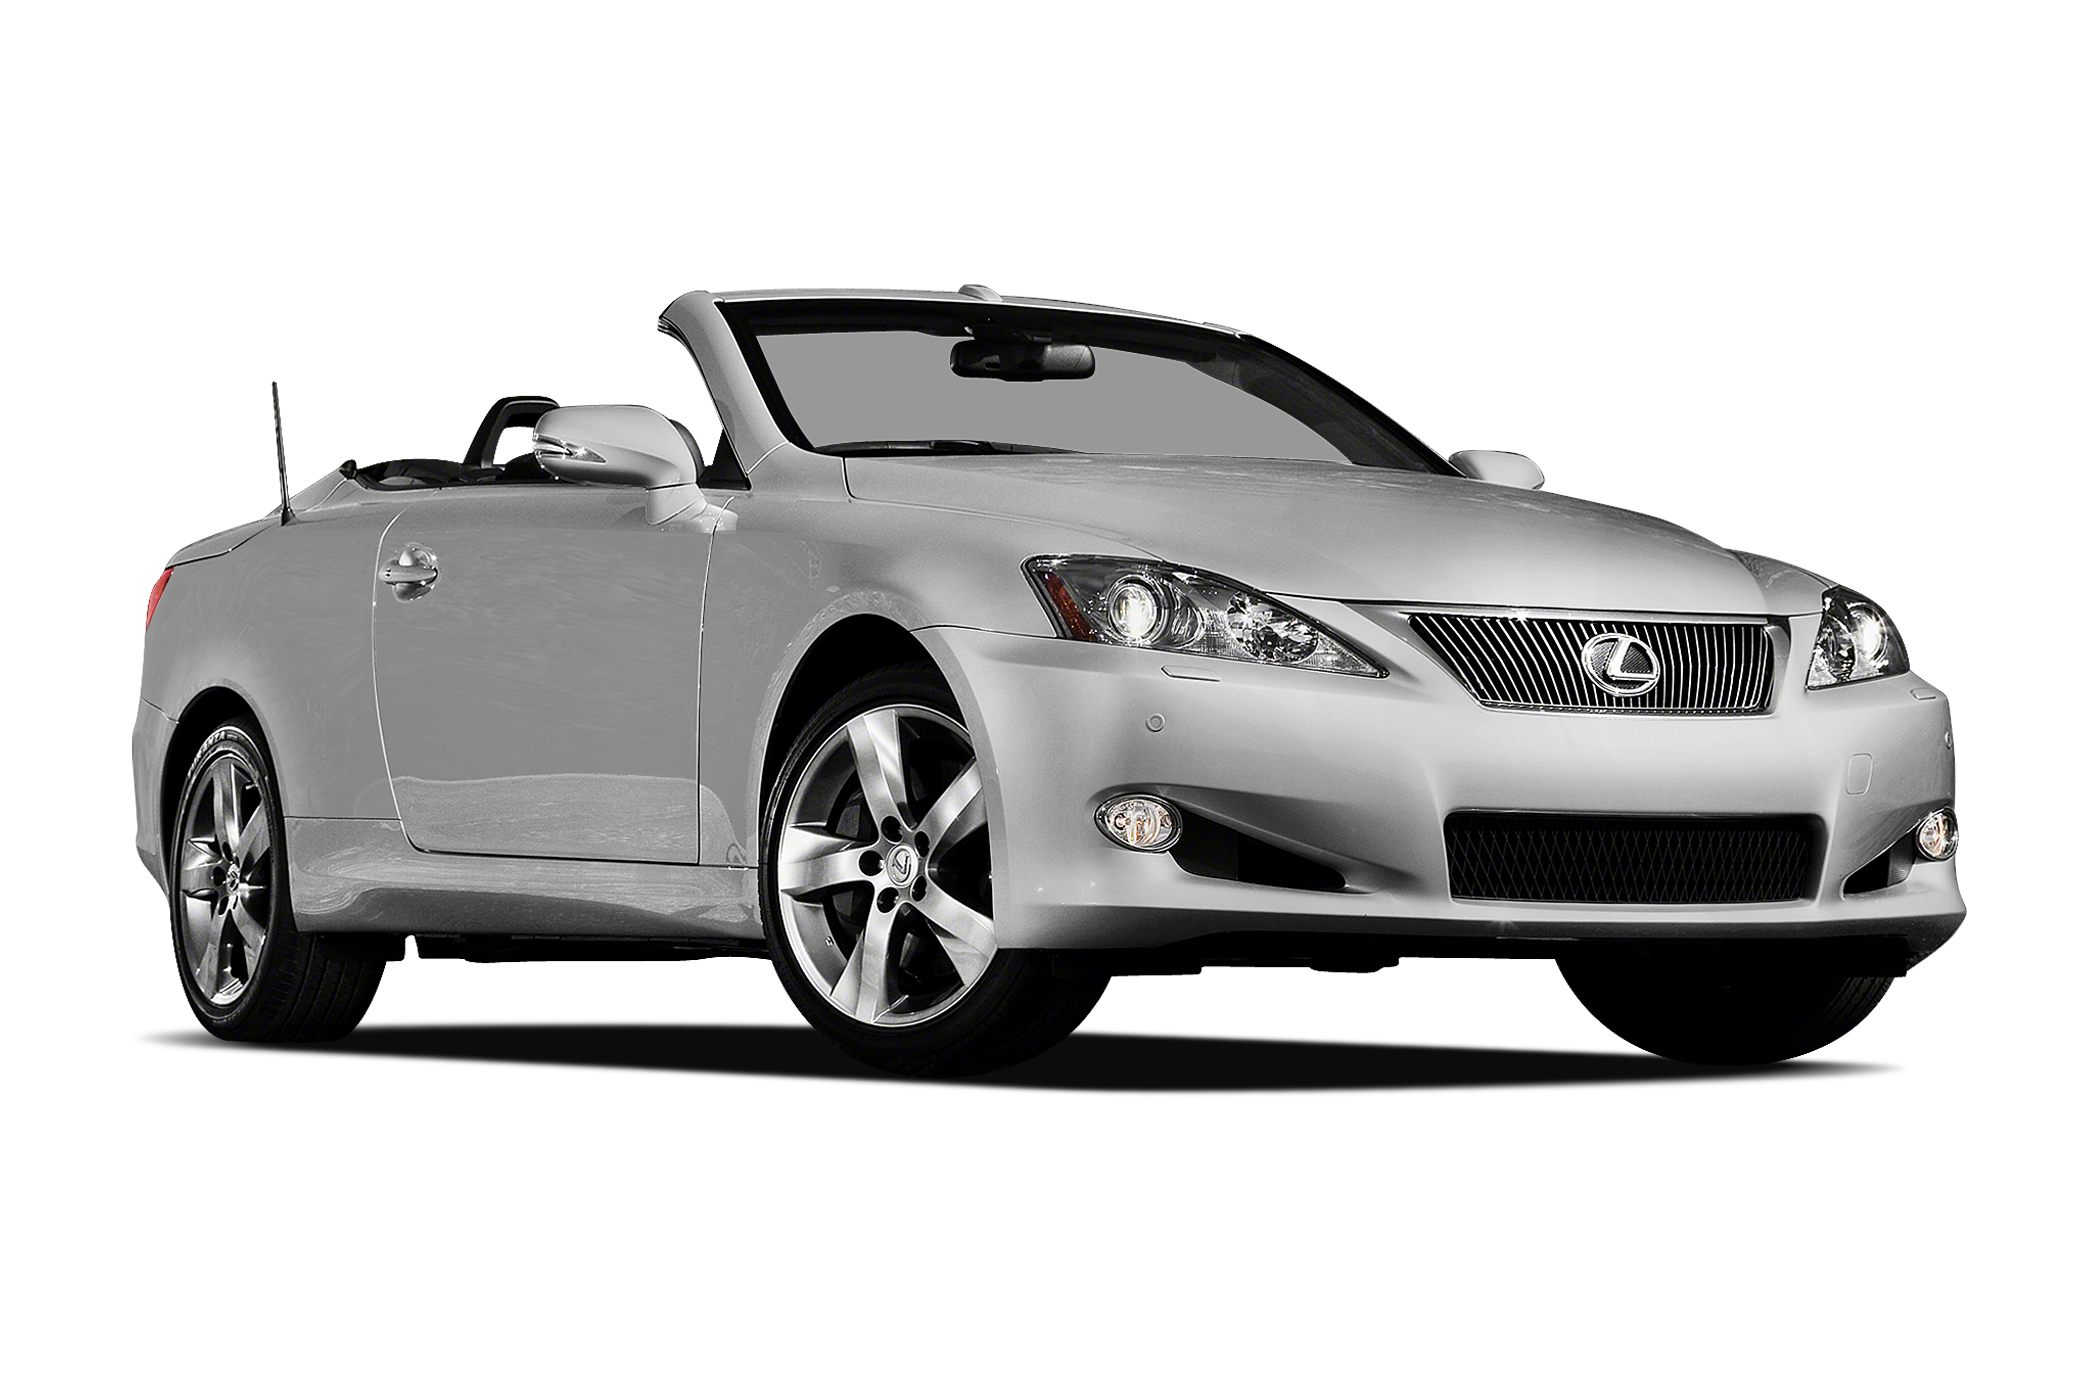 2011 Lexus IS 350C Base Convertible for sale in Houston for $38,950 with 18,259 miles.